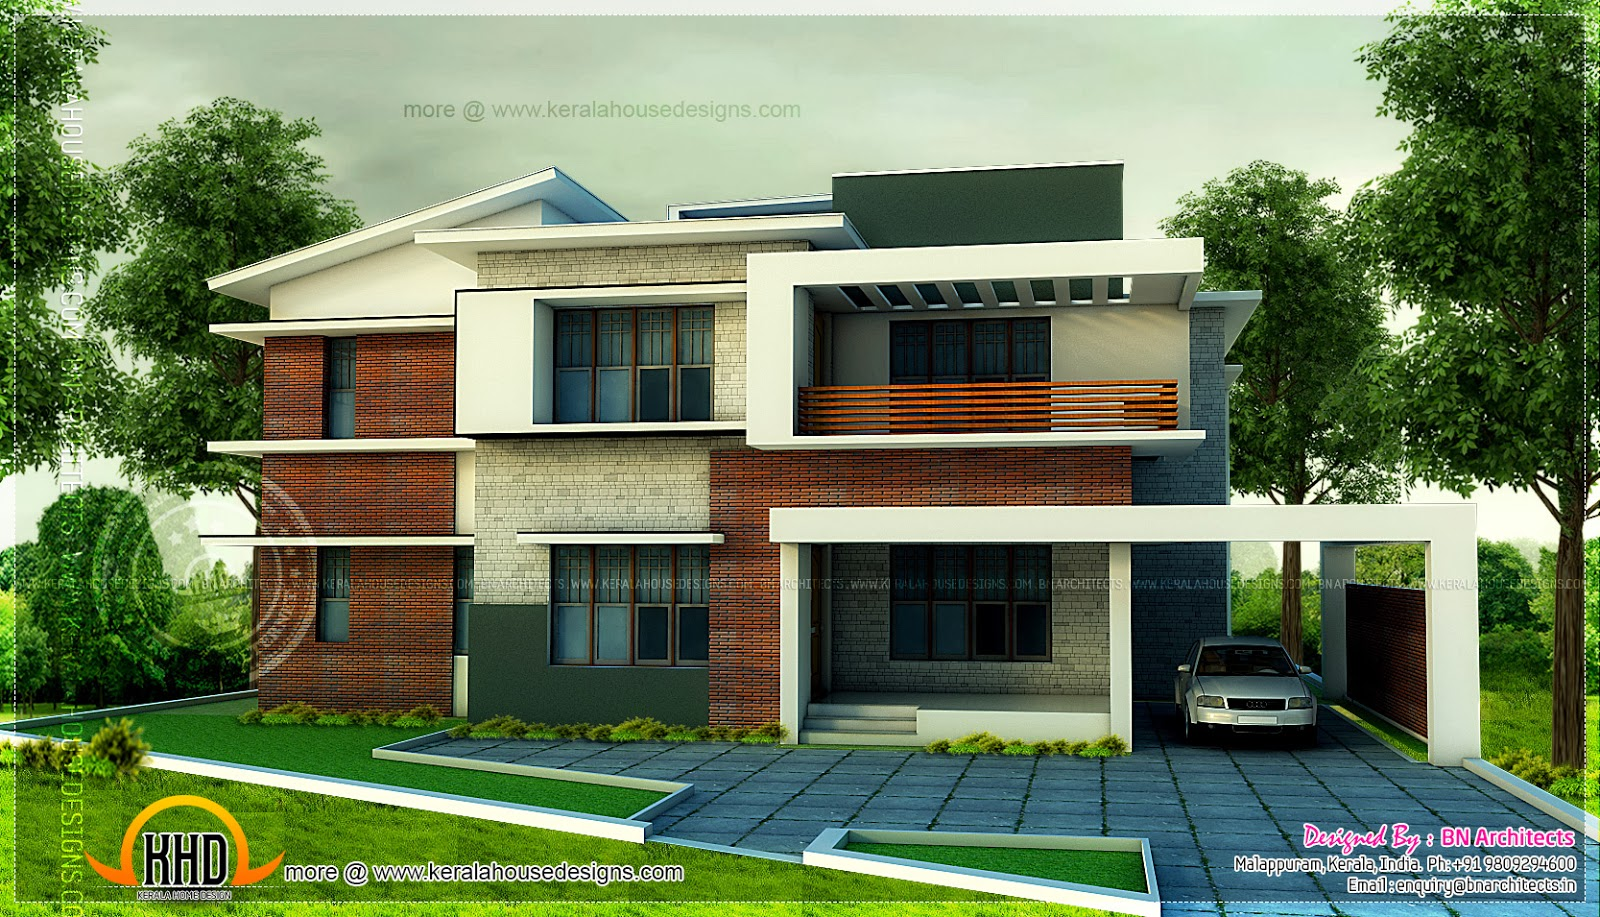 5 bedroom modern home in 3440 sq feet floor plan for 5 bedroom house designs